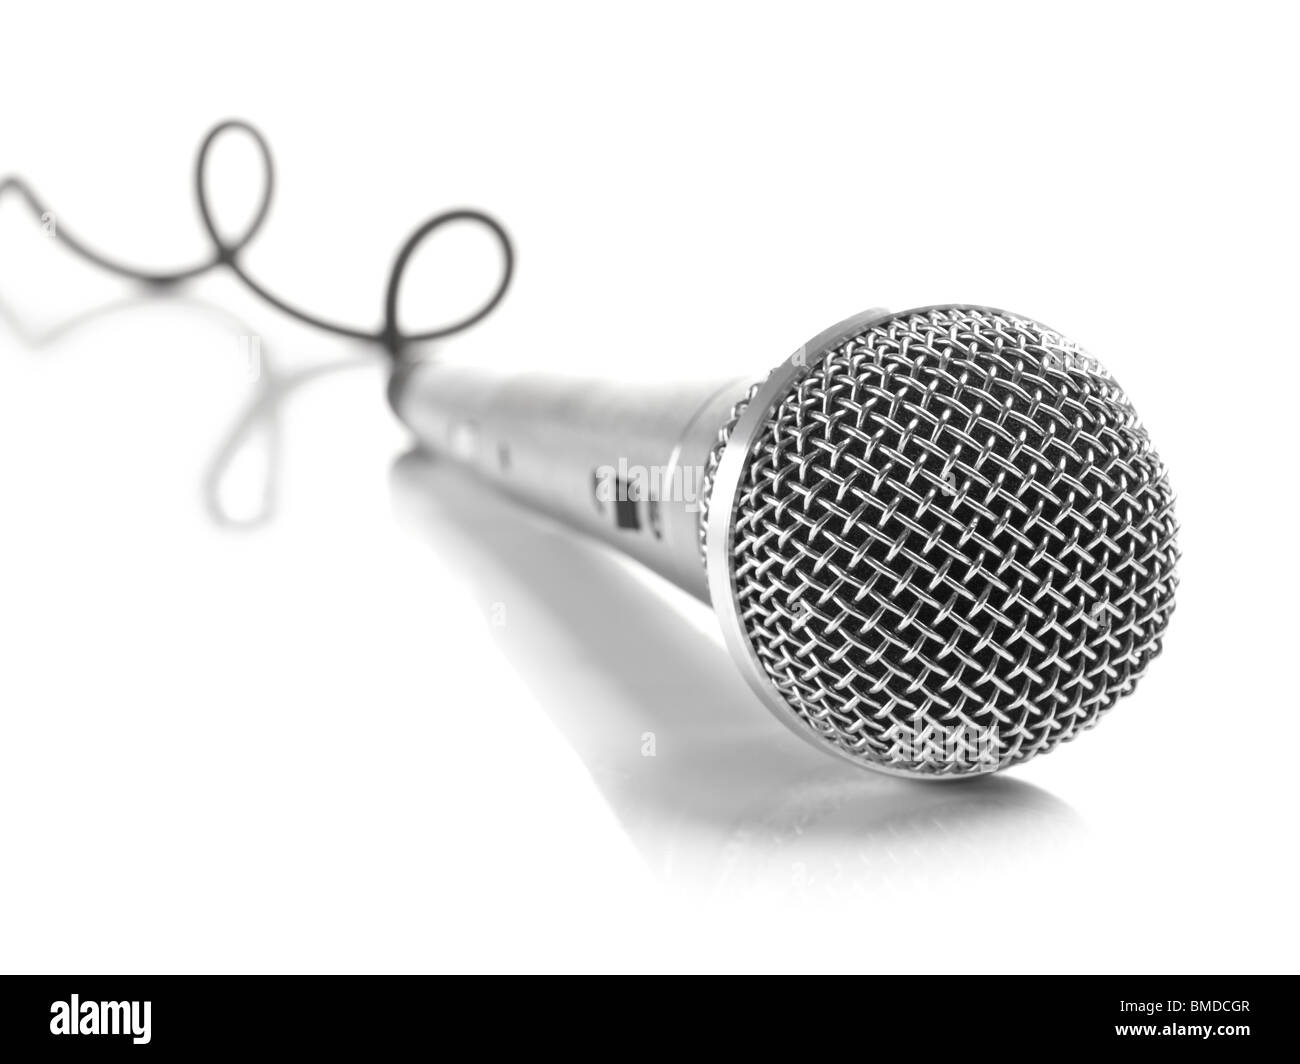 A dynamic mic with a curled cable over white. - Stock Image